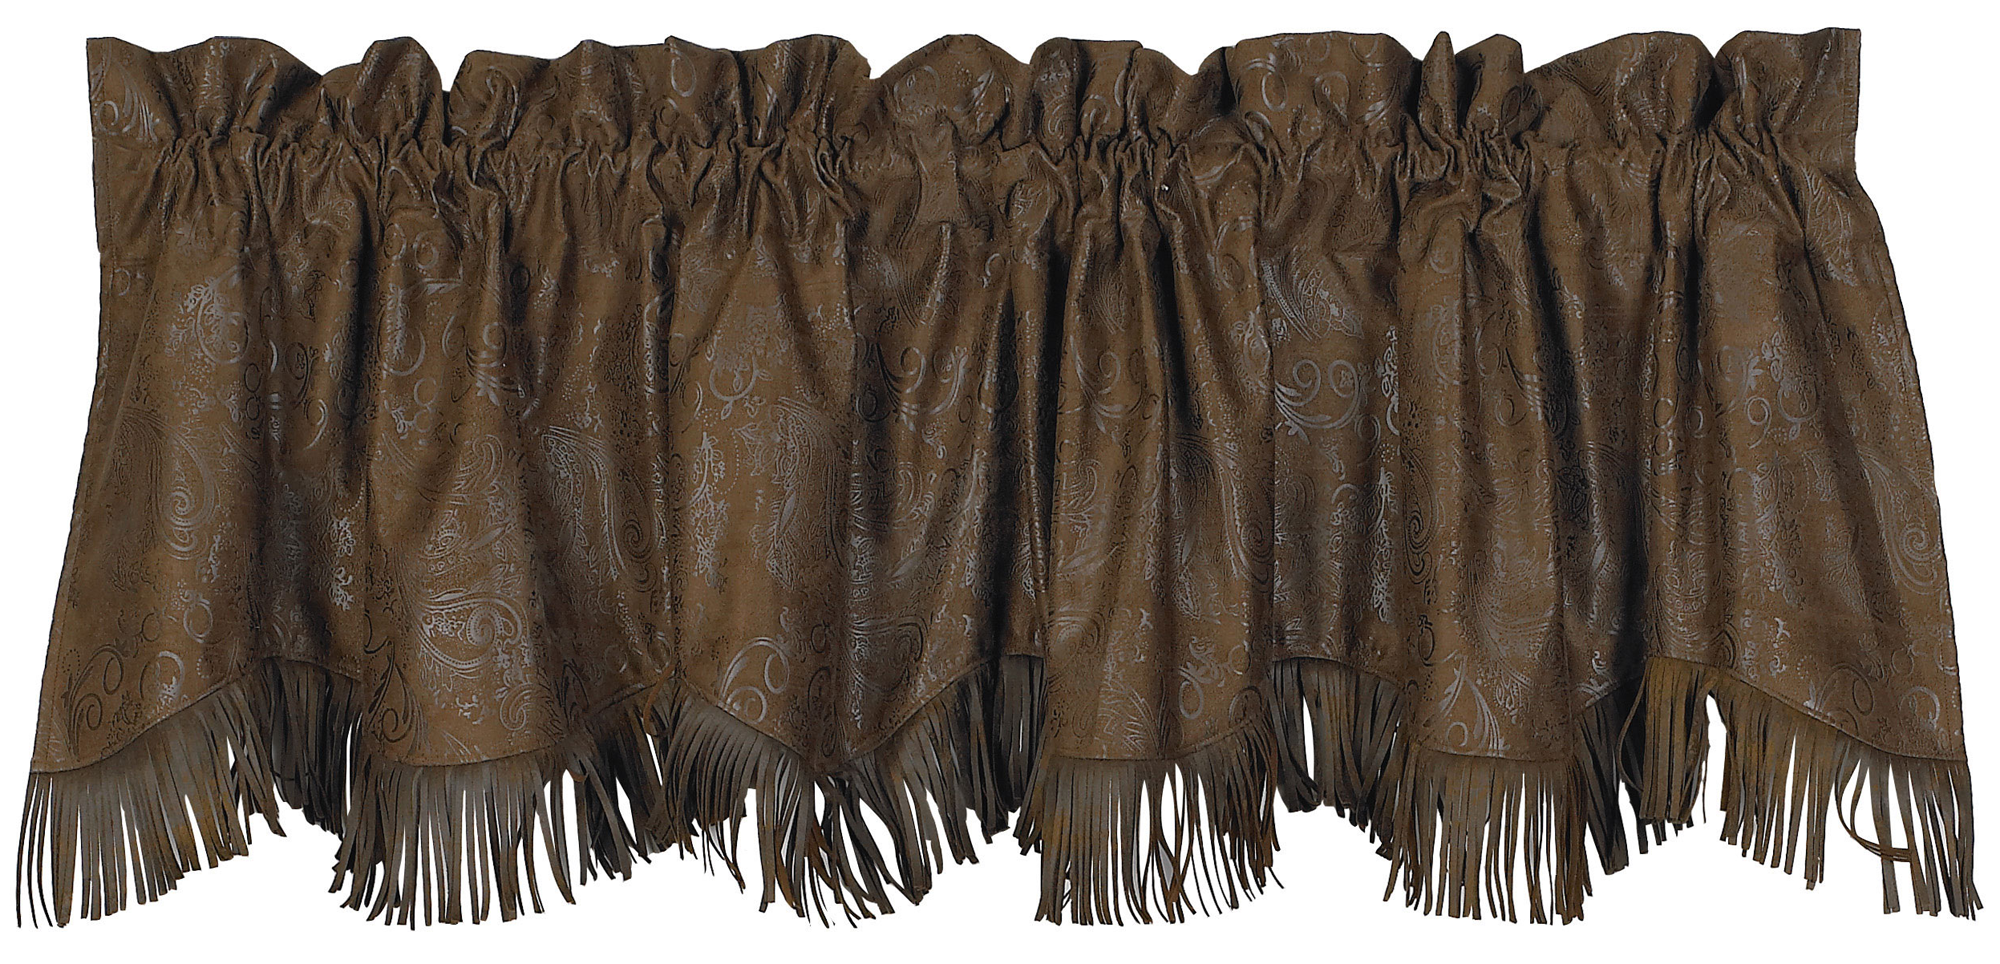 VL1004 - Fringed Tooled Faux Leather Valance - Western Bedding by HiEnd Accents